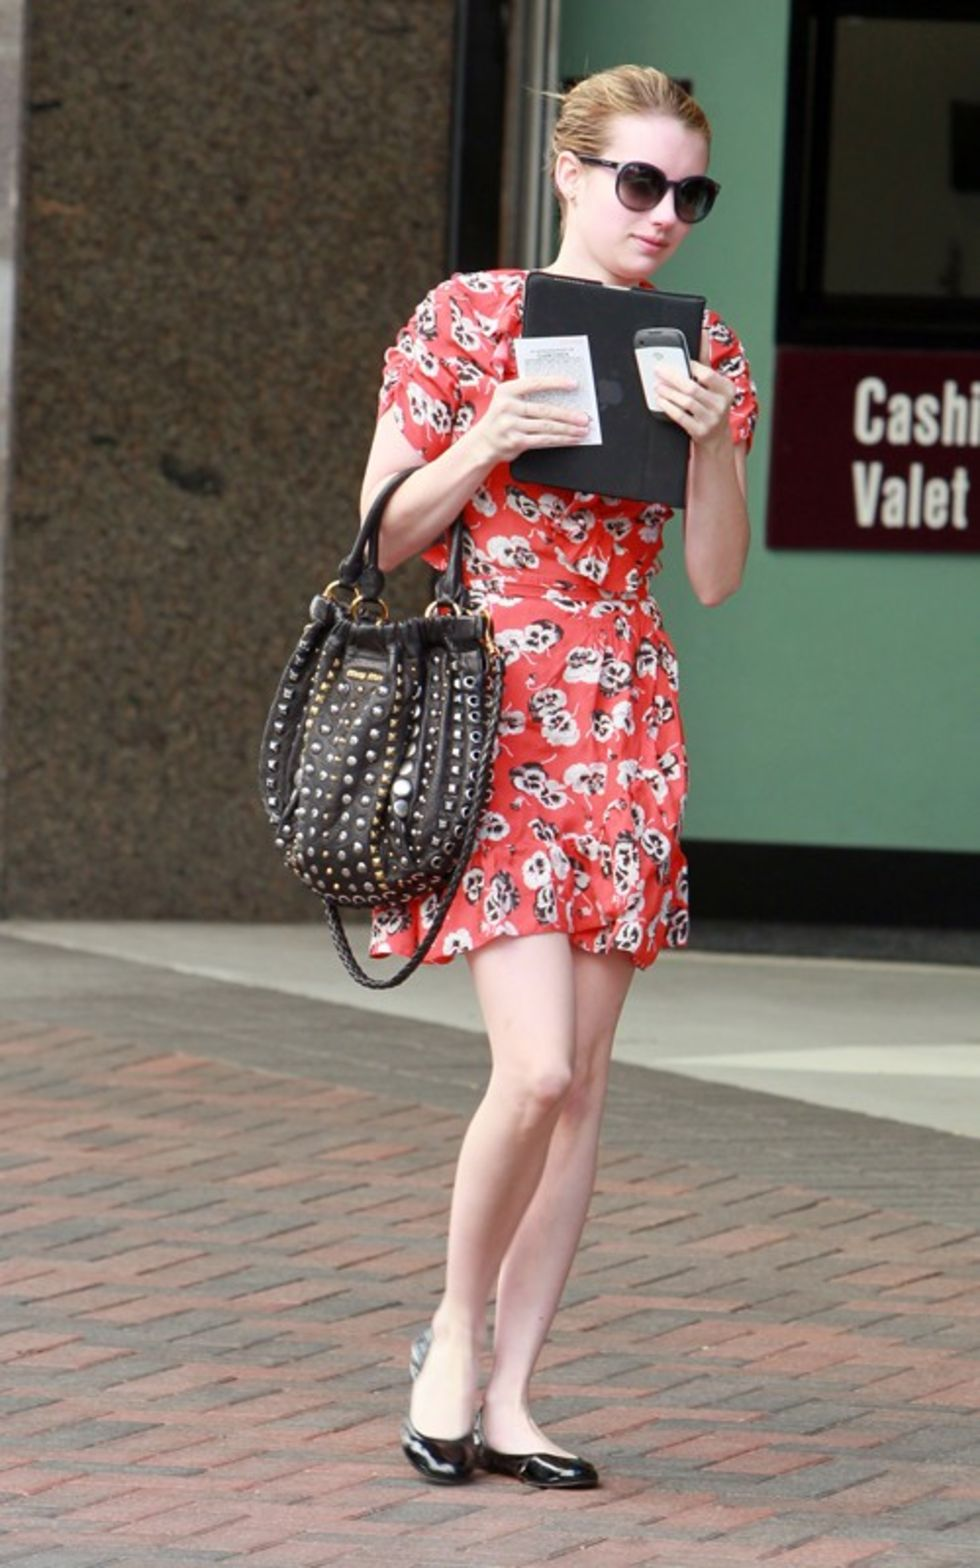 emma-roberts-showing-legs-in-beverly-hills-mq-04 - GotCeleb